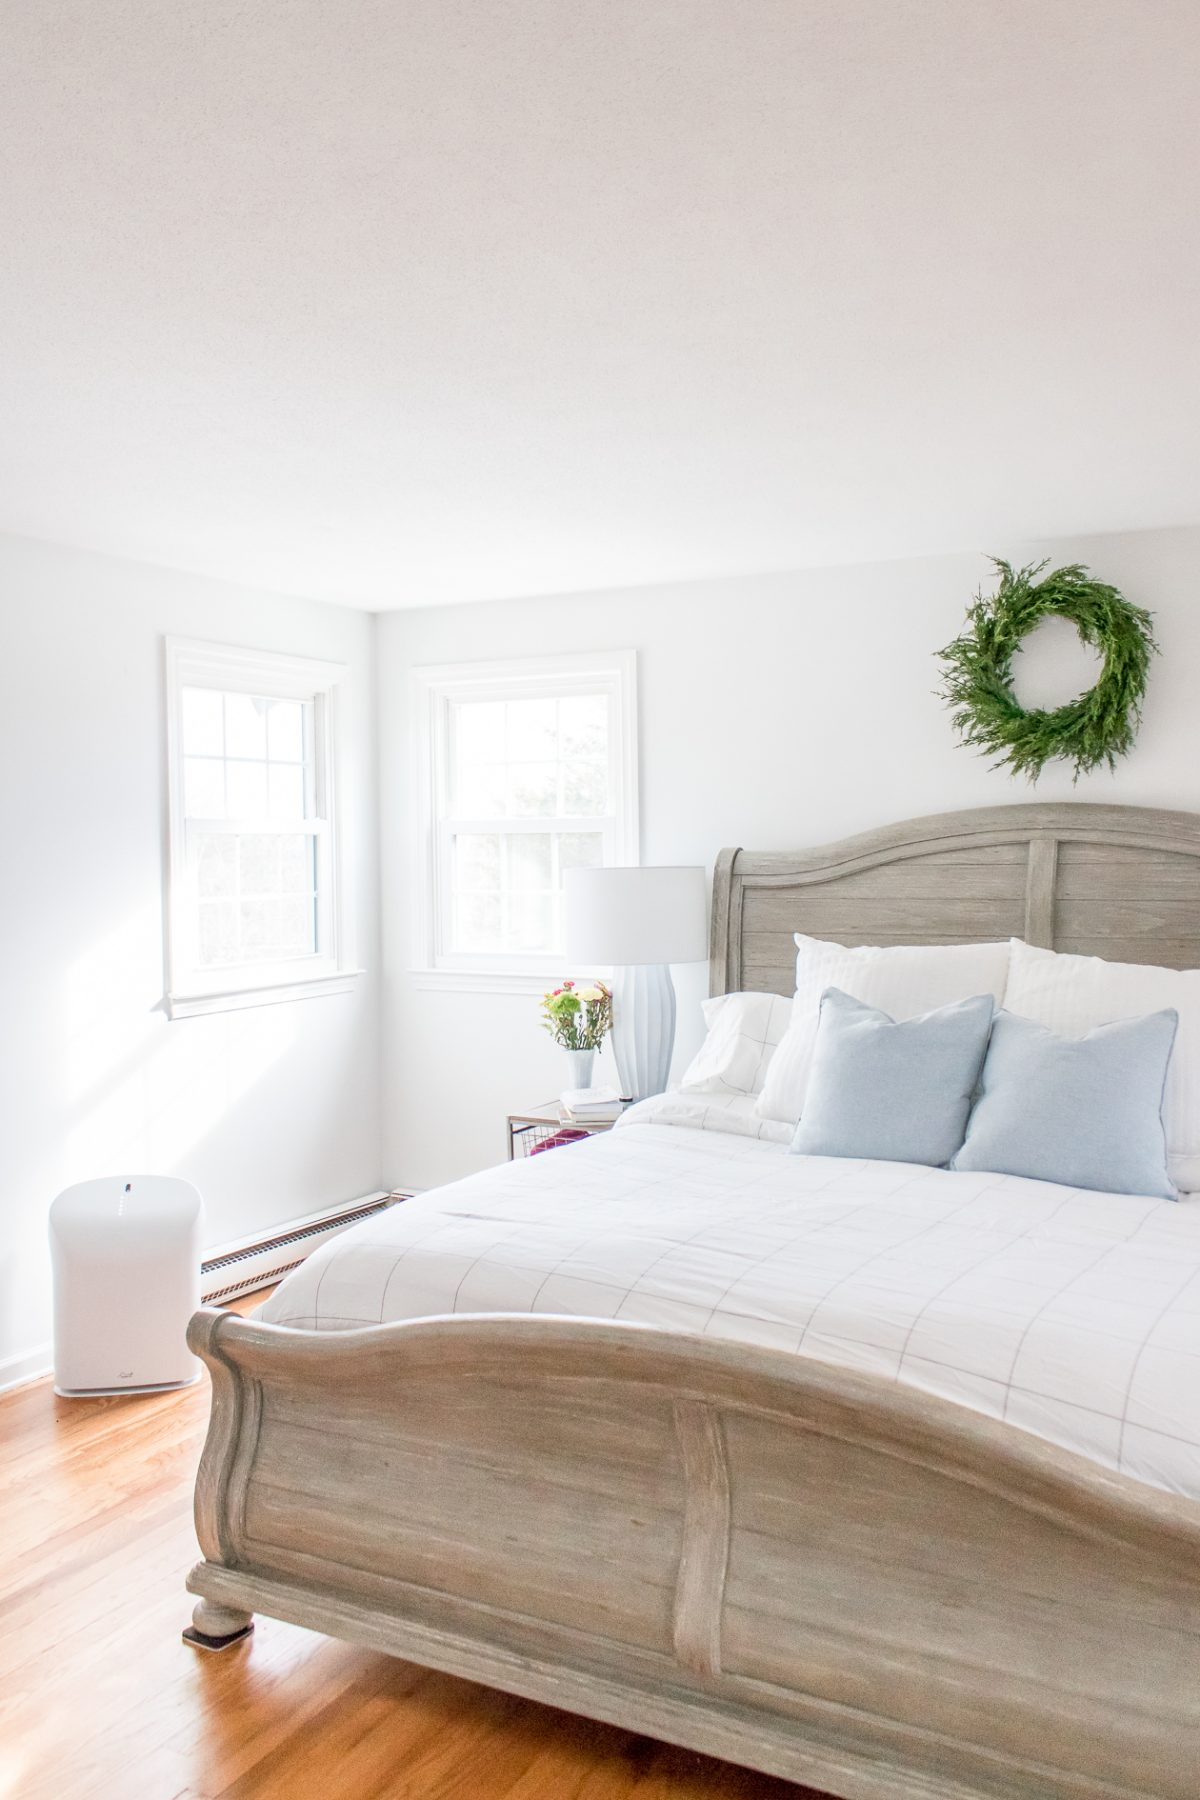 Bright white bedroom with california king size bed with white sheets and blue pillows